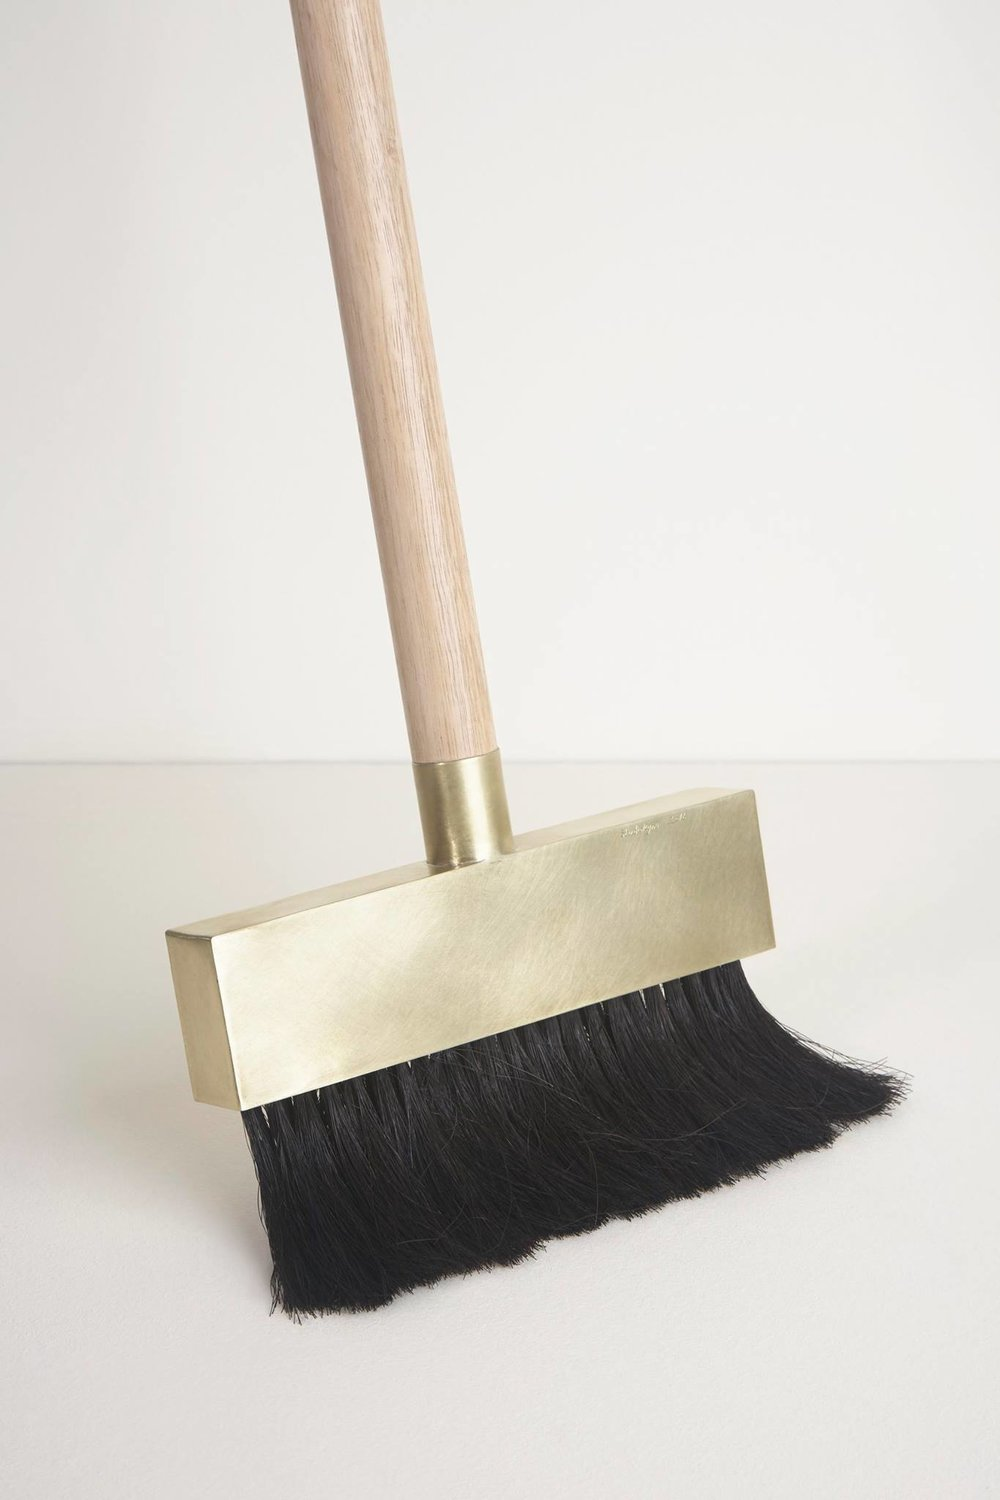 Brass Dustpan and Broom designed by Studiokyss